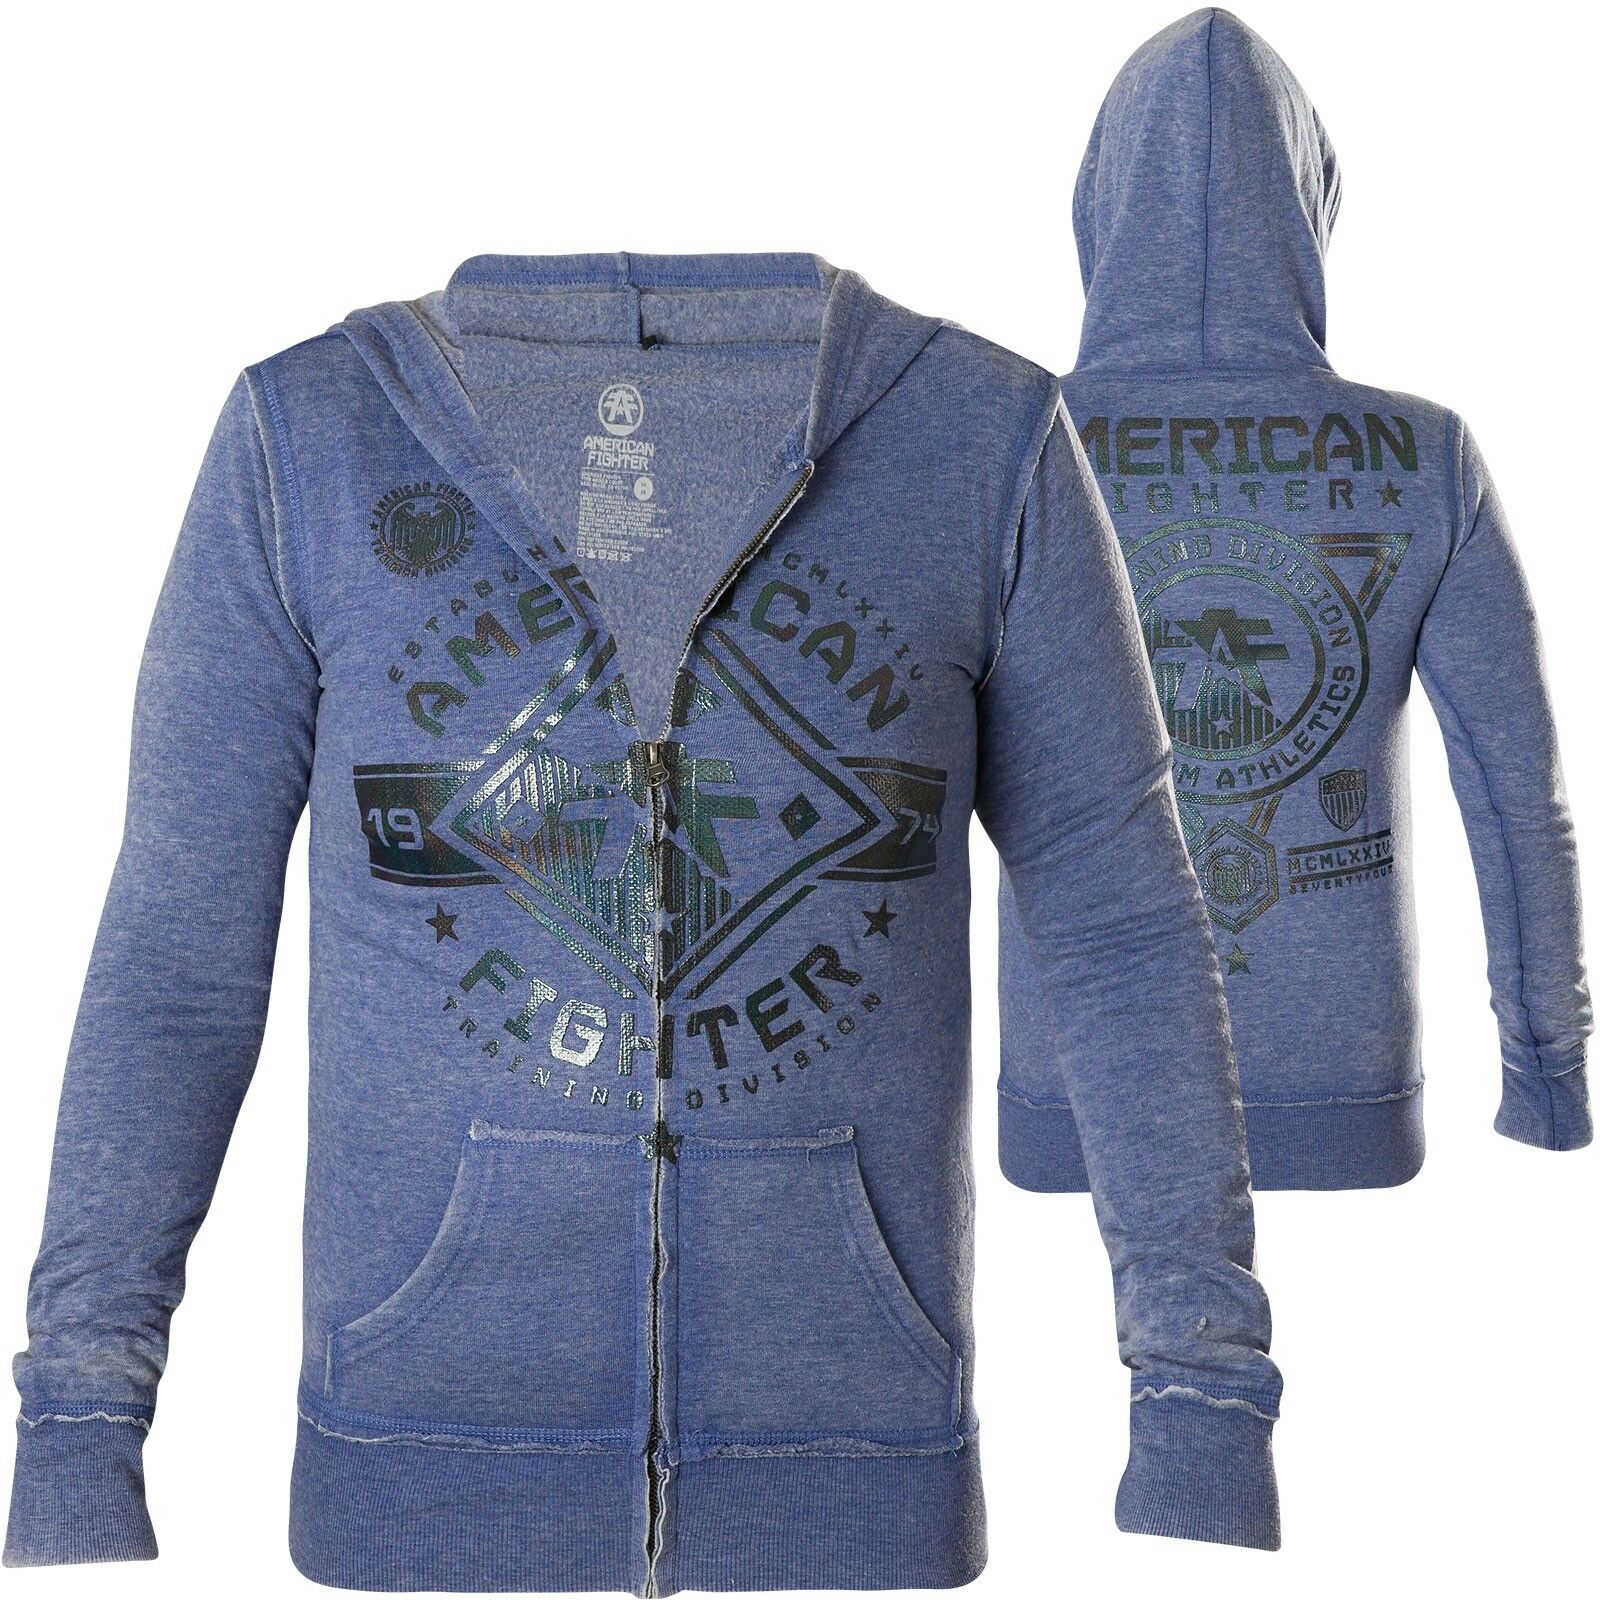 American Fighter Affliction Donna Hoody Massachusetts giacche blu con